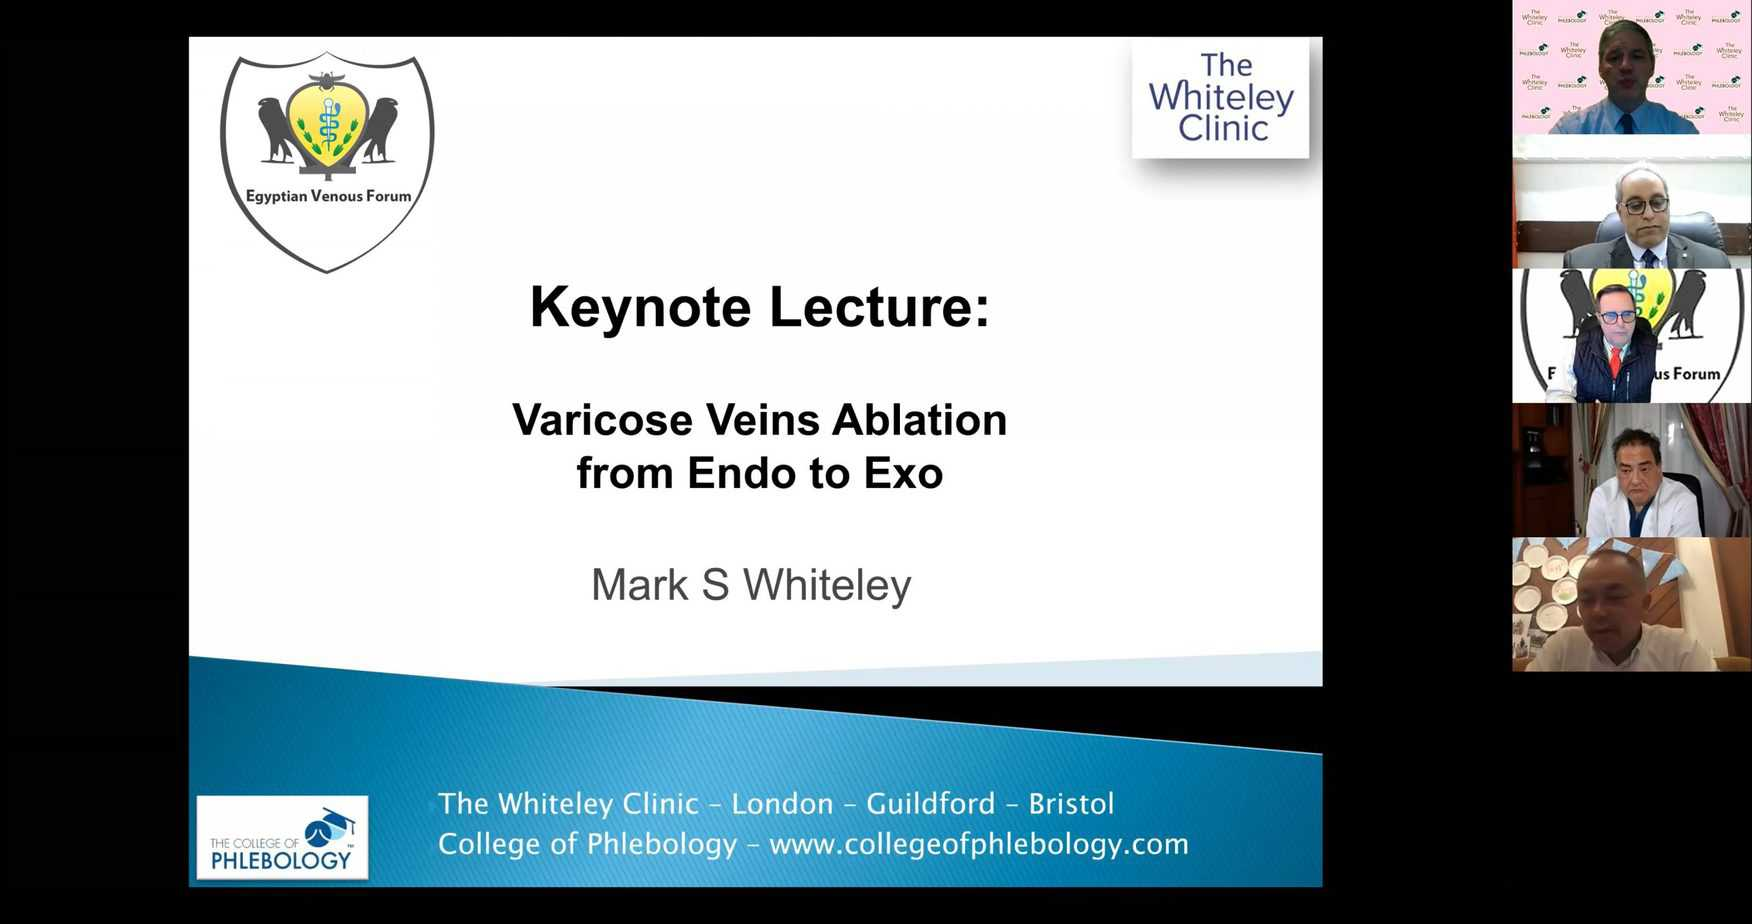 Varicose Veins Ablation – Keynote Lecture